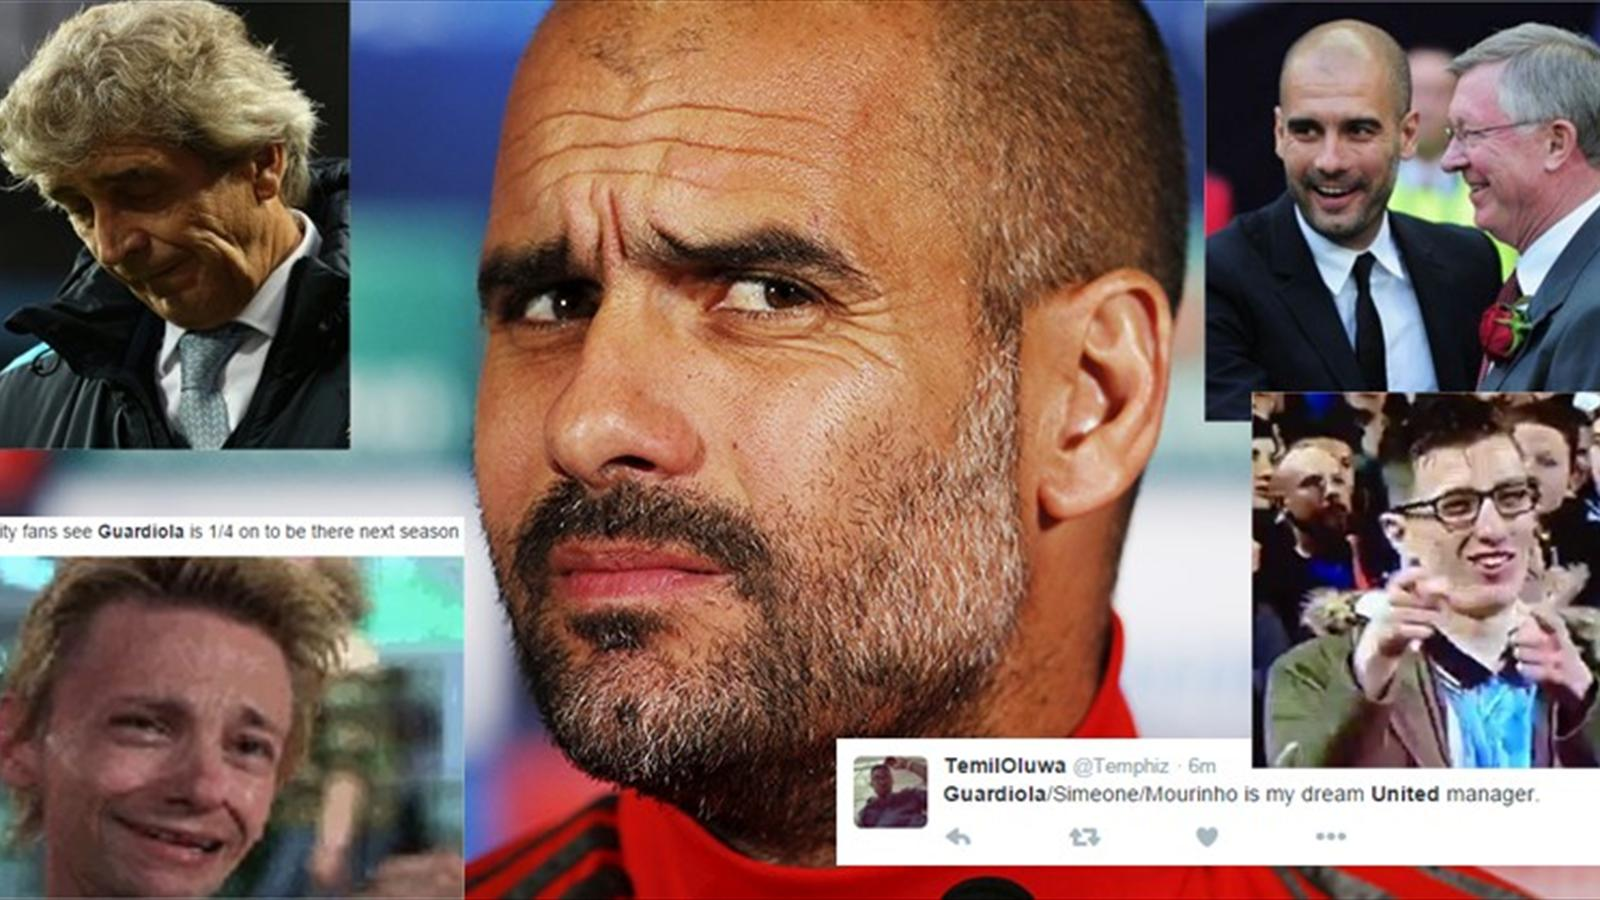 Twitter reaction to Pep Guardiola confirming he is coming to the Premier League